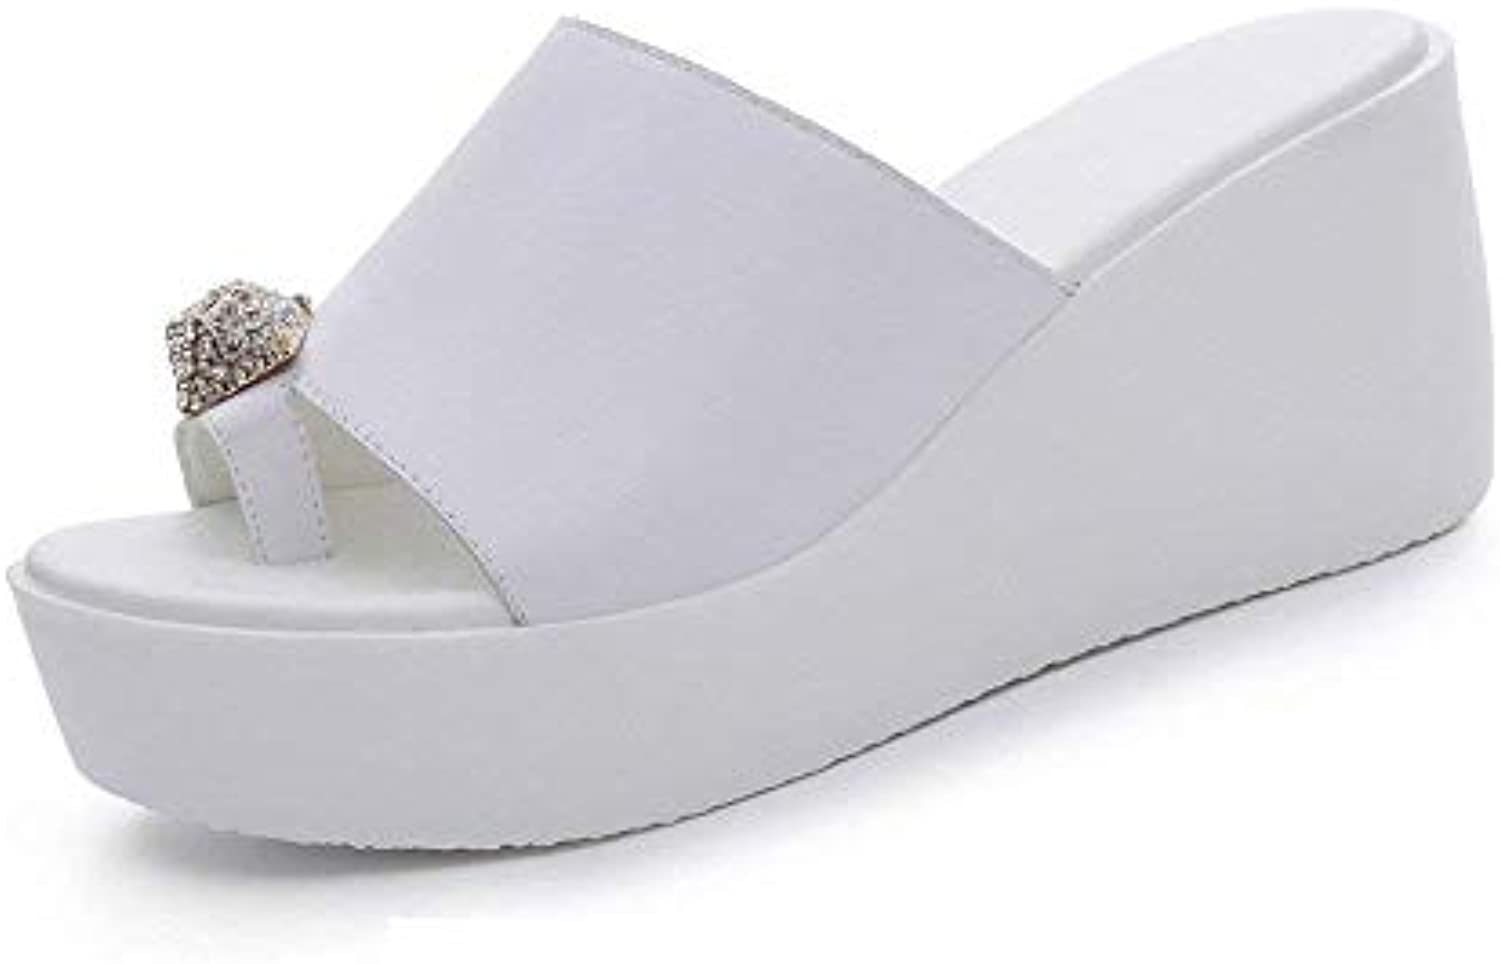 Jincosua Cool Slope with Slippers Female Summer 2018 New Thick Bottom Summer Outdoor Tide Pantofole a Forma di... | Molte varietà  | Uomo/Donna Scarpa